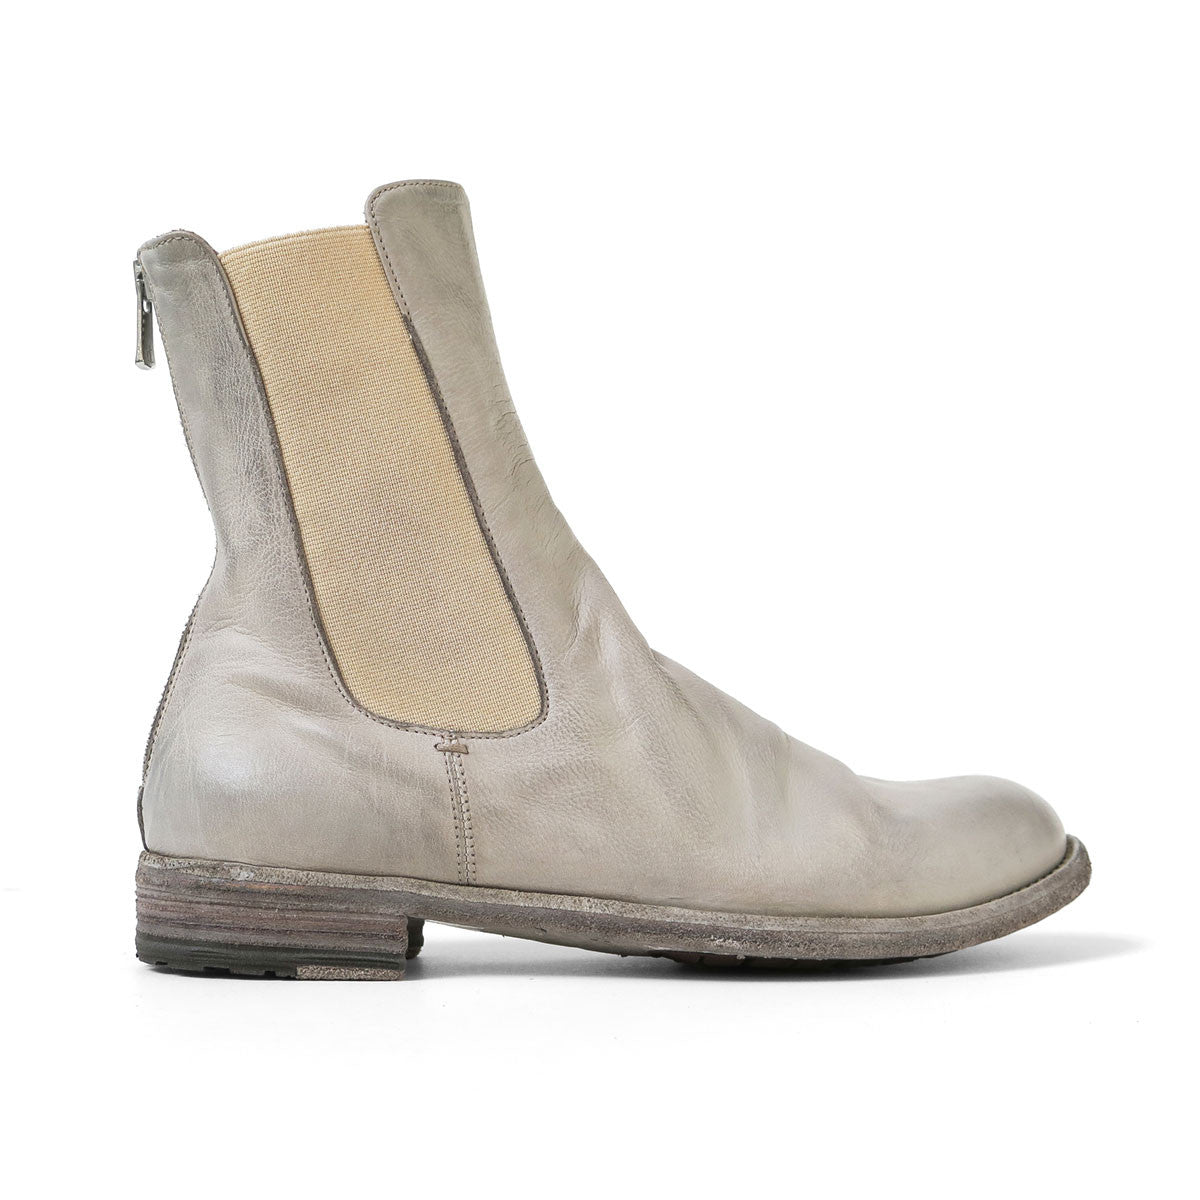 officine creative lexikon boot